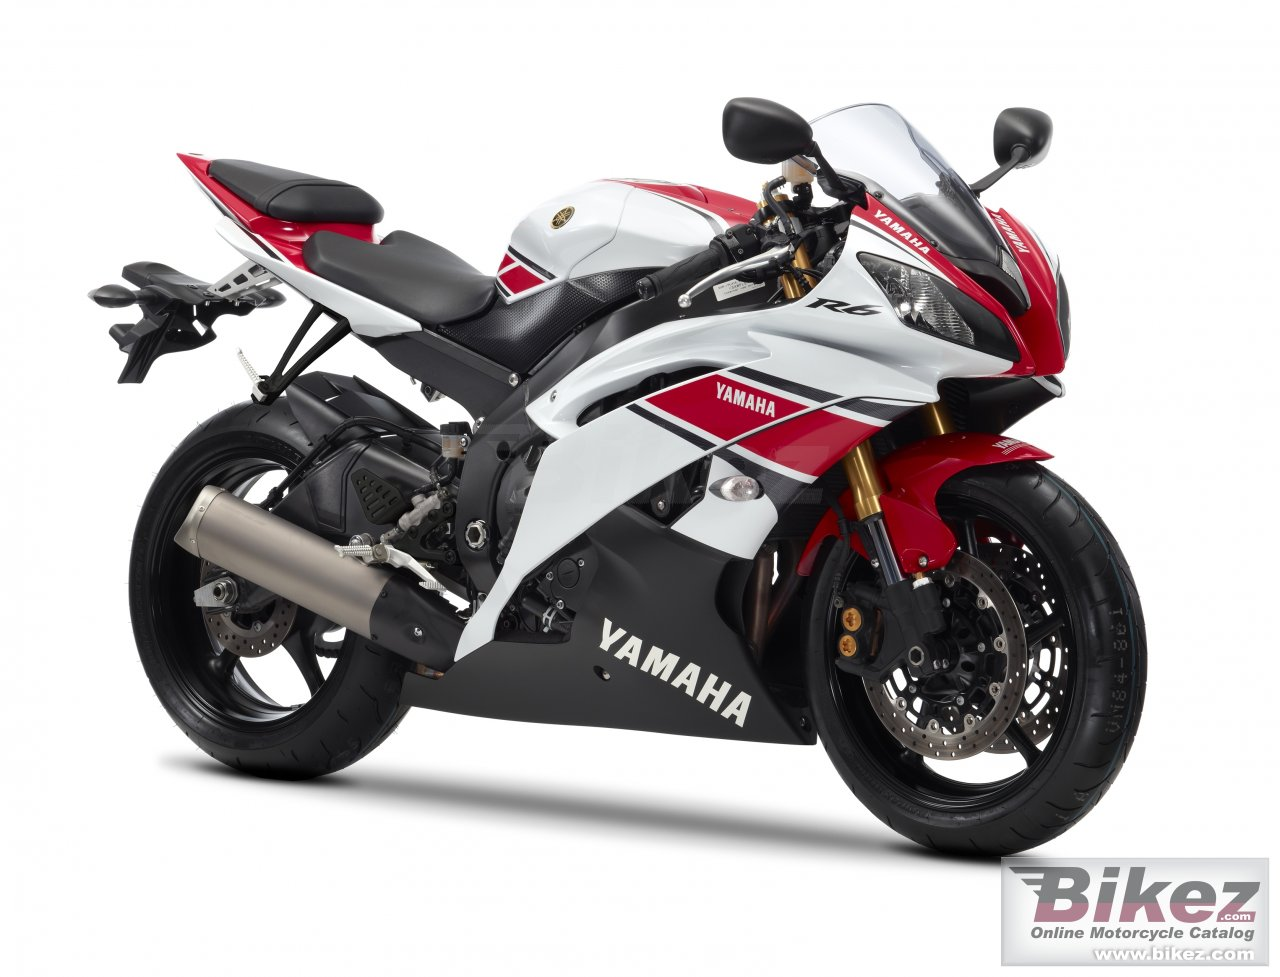 Big Yamaha yzf-r6 wgp 50th anniversary picture and wallpaper from Bikez.com